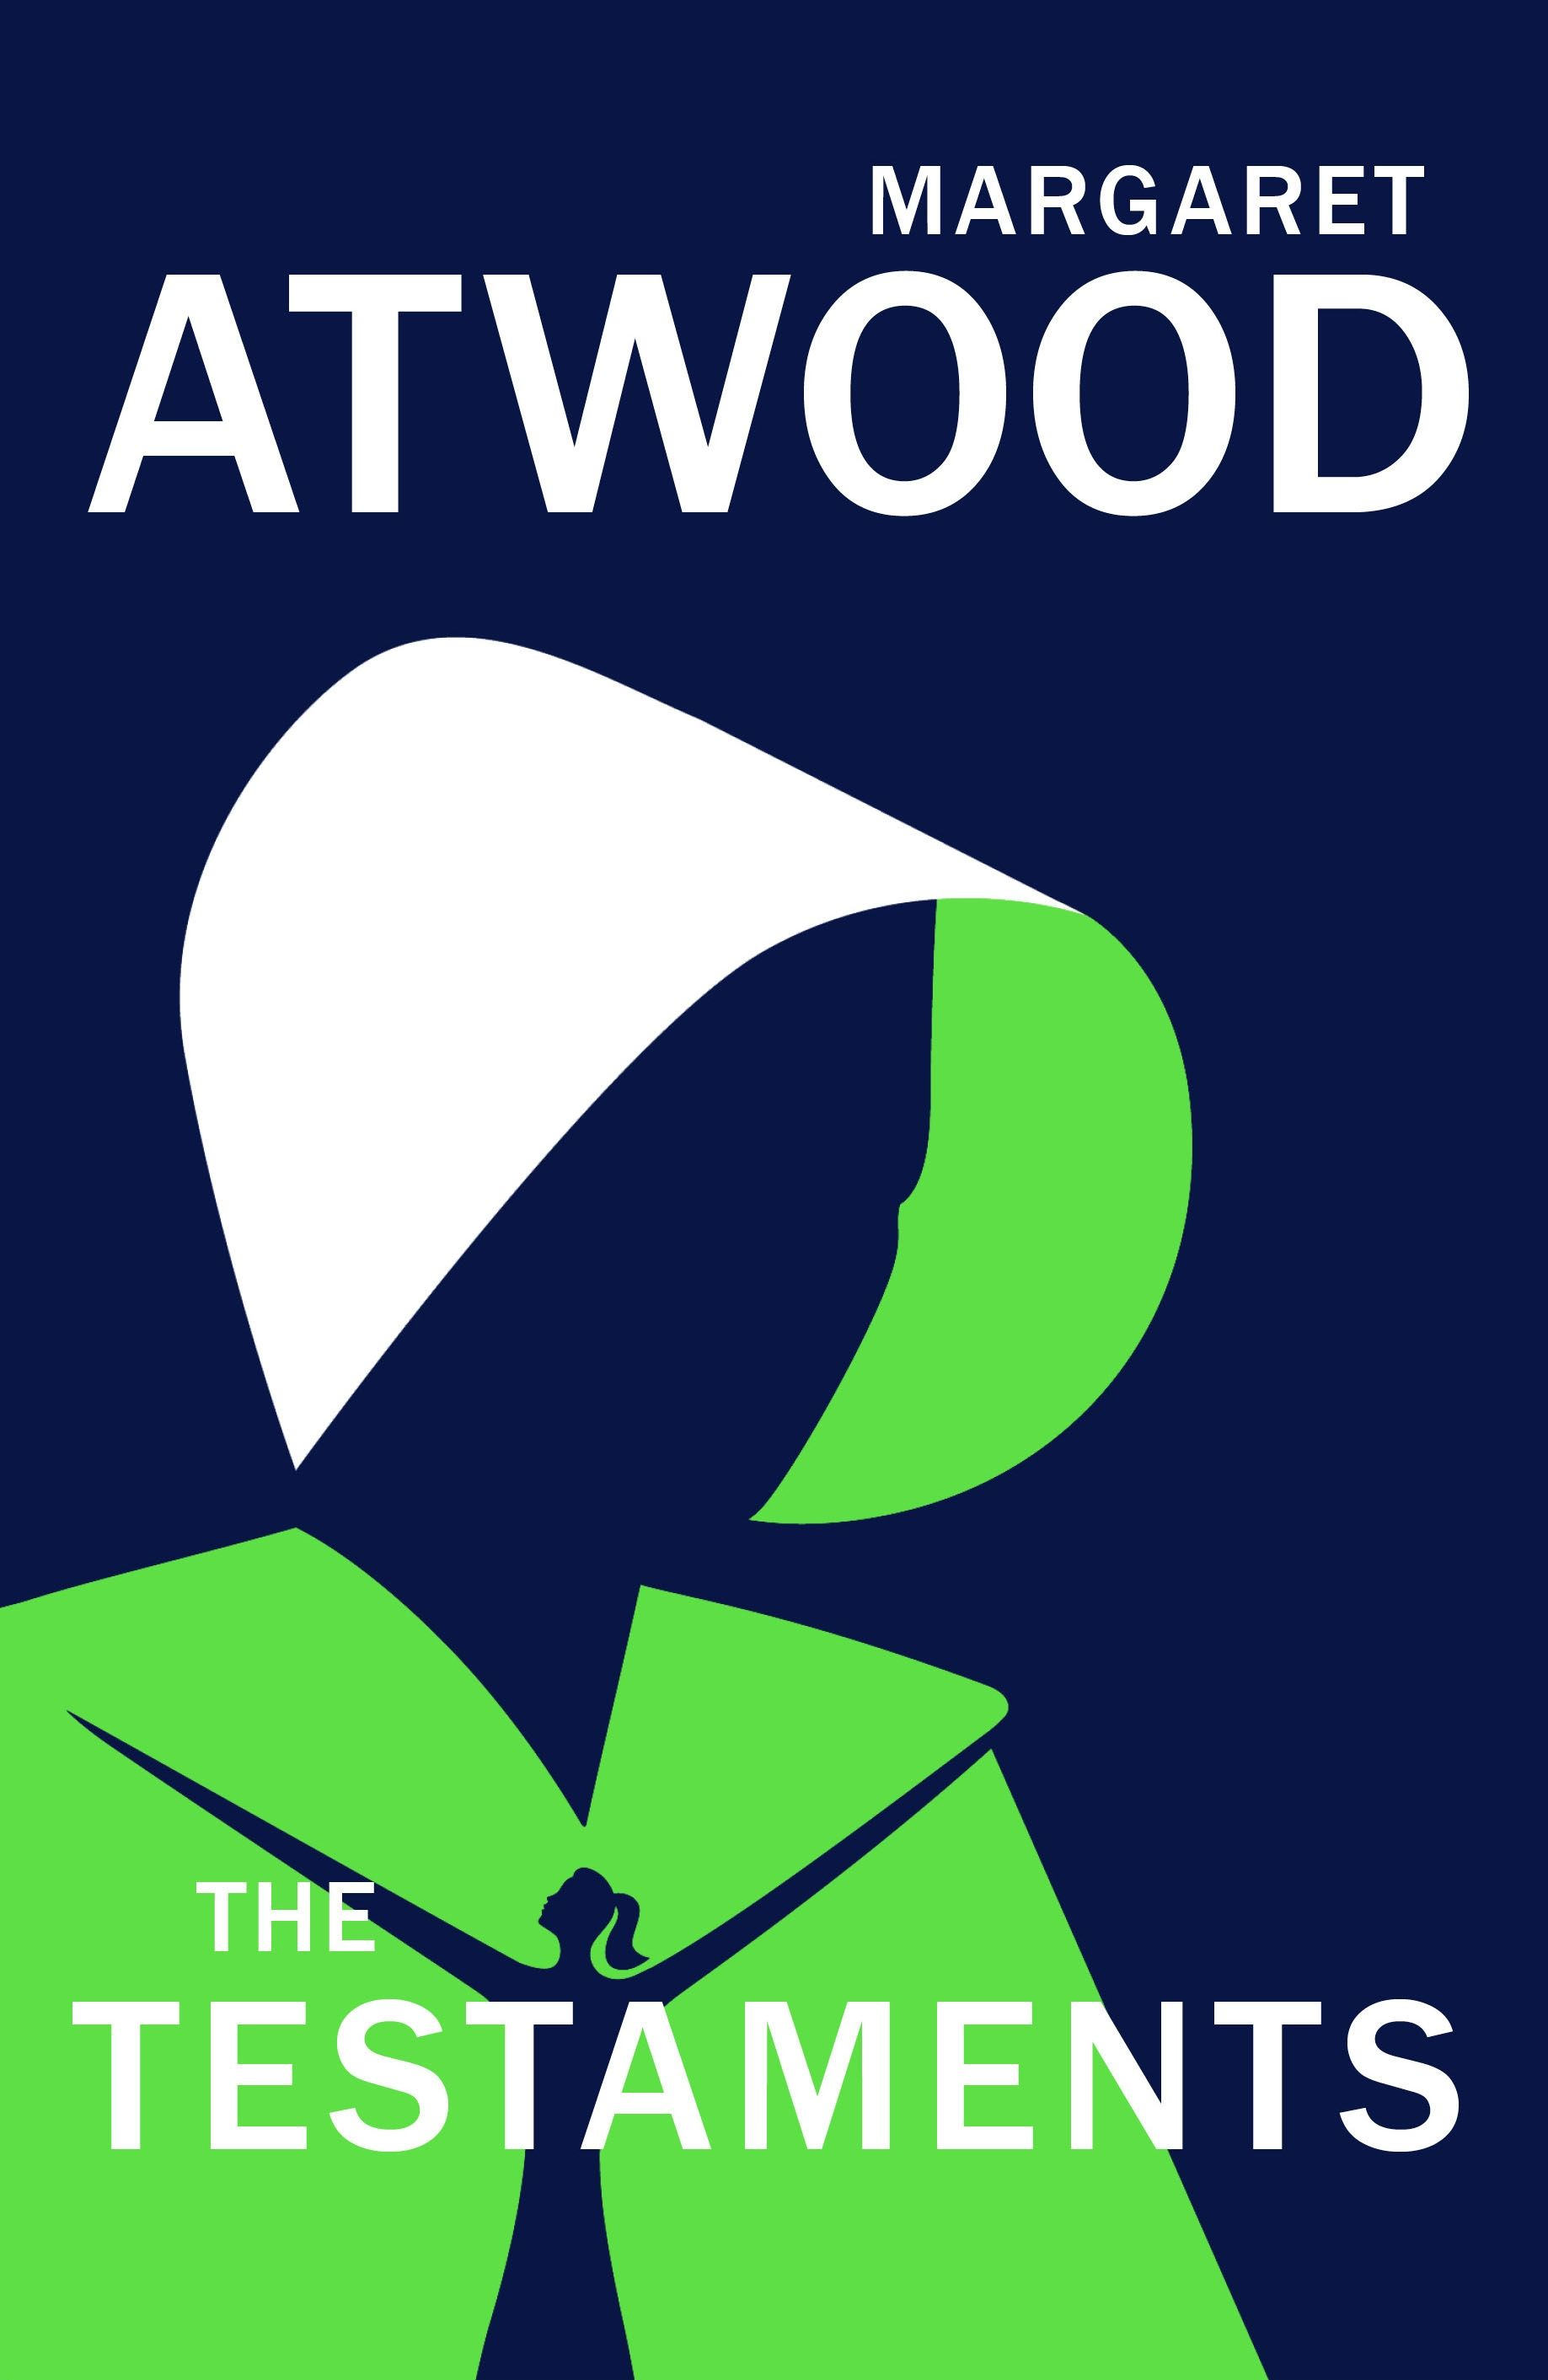 Margaret Atwood, The Testaments, cover